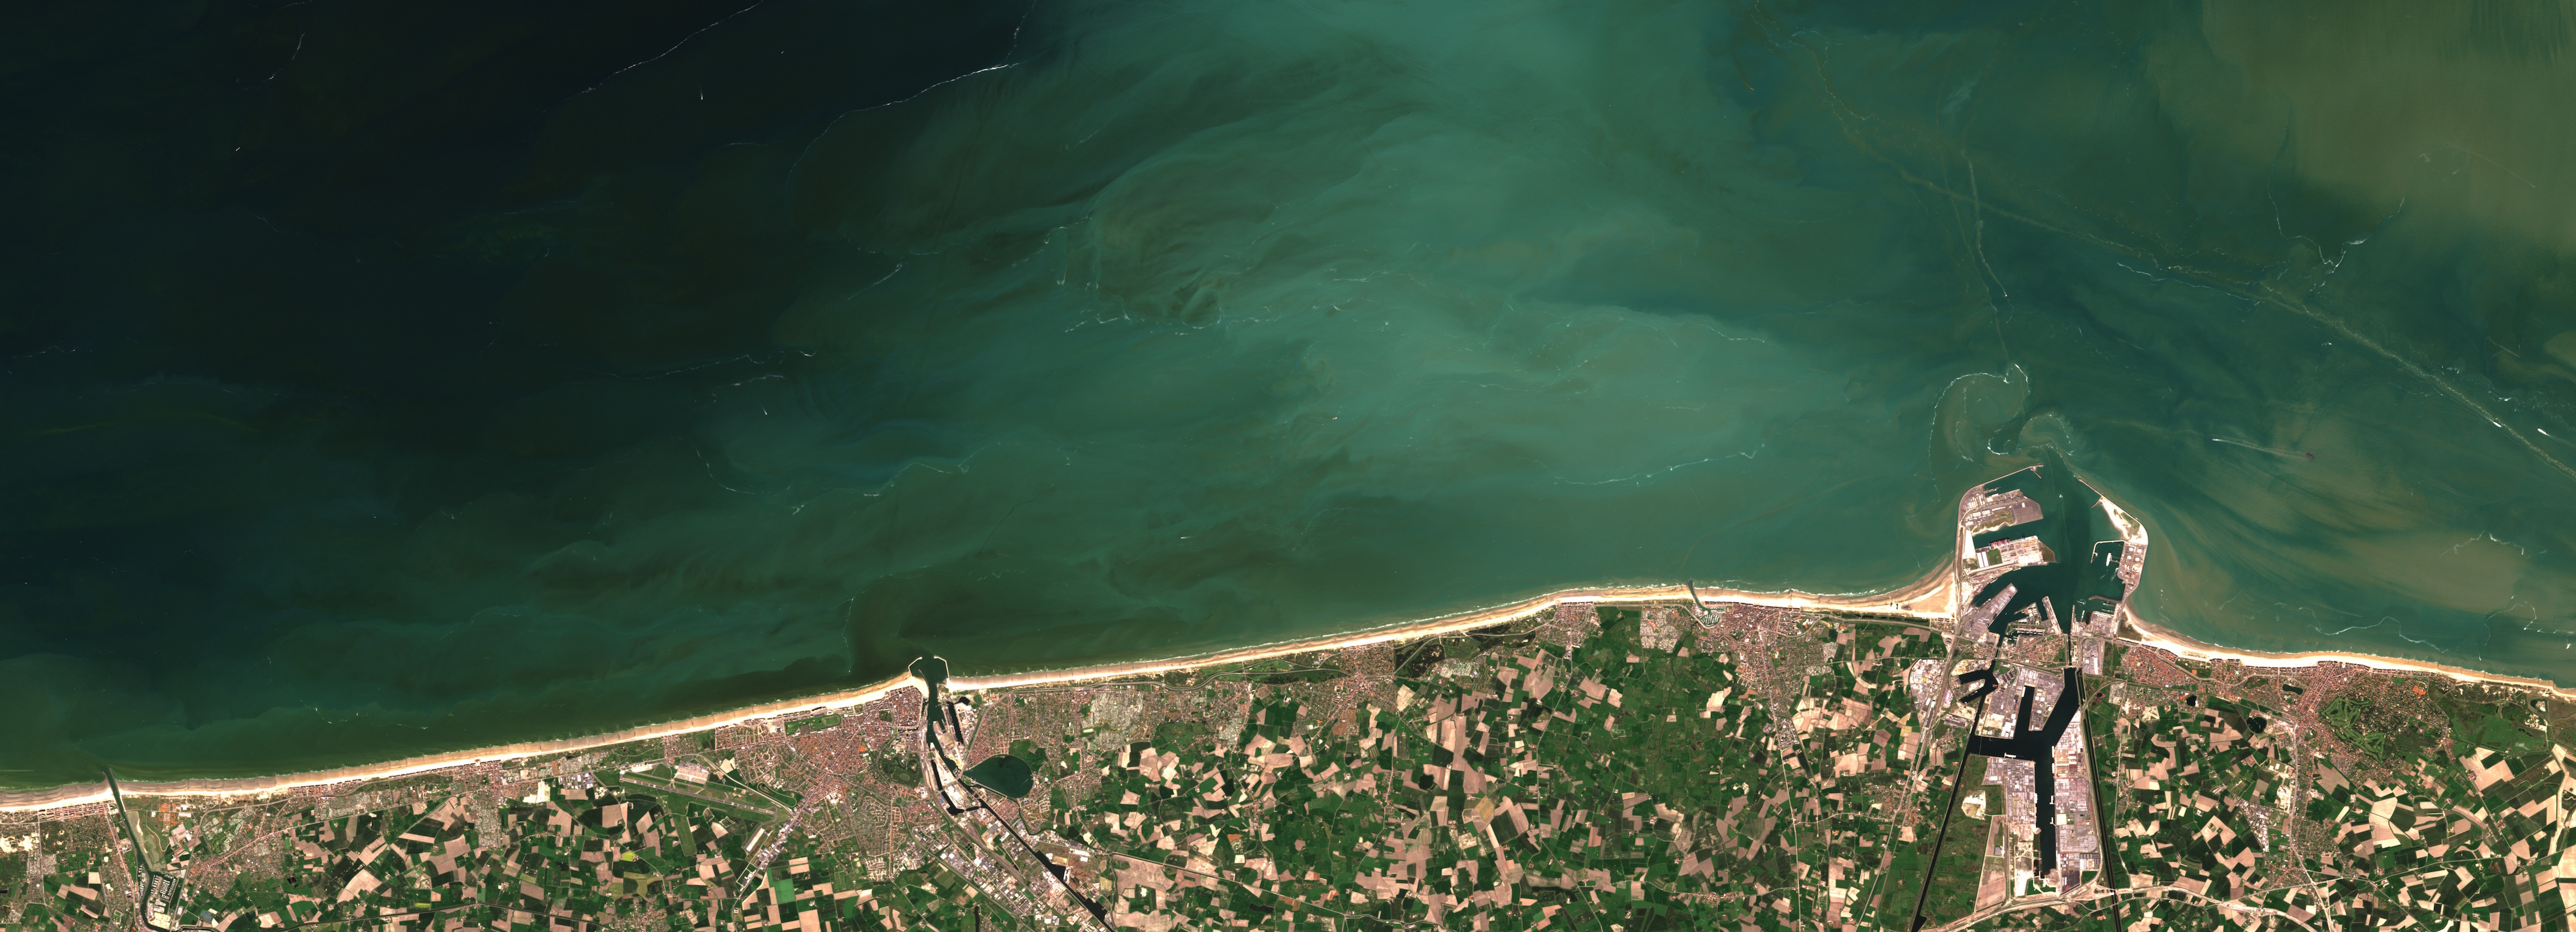 Today's Image of the Day comes thanks to the European Space Agency and features a look at a phytoplankton bloom off the coast of Belgium.